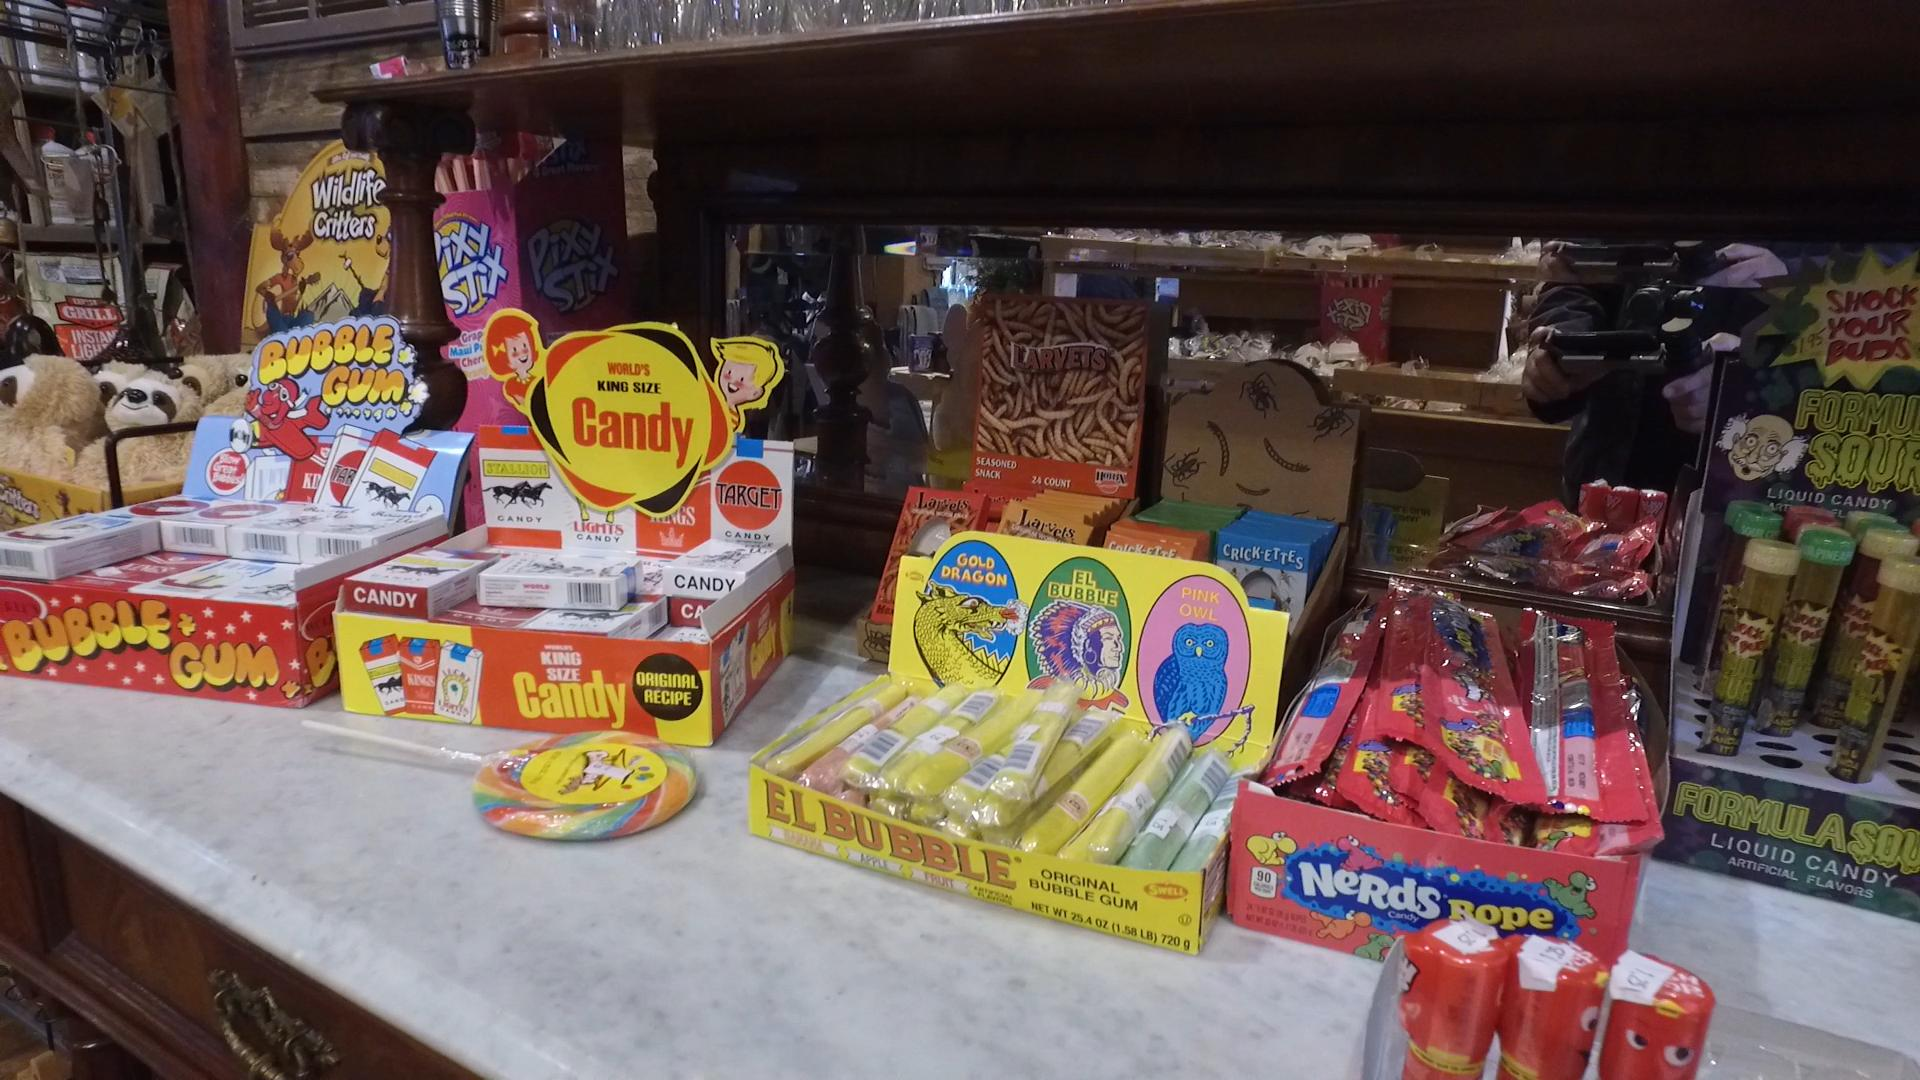 OUTPOST CANDY